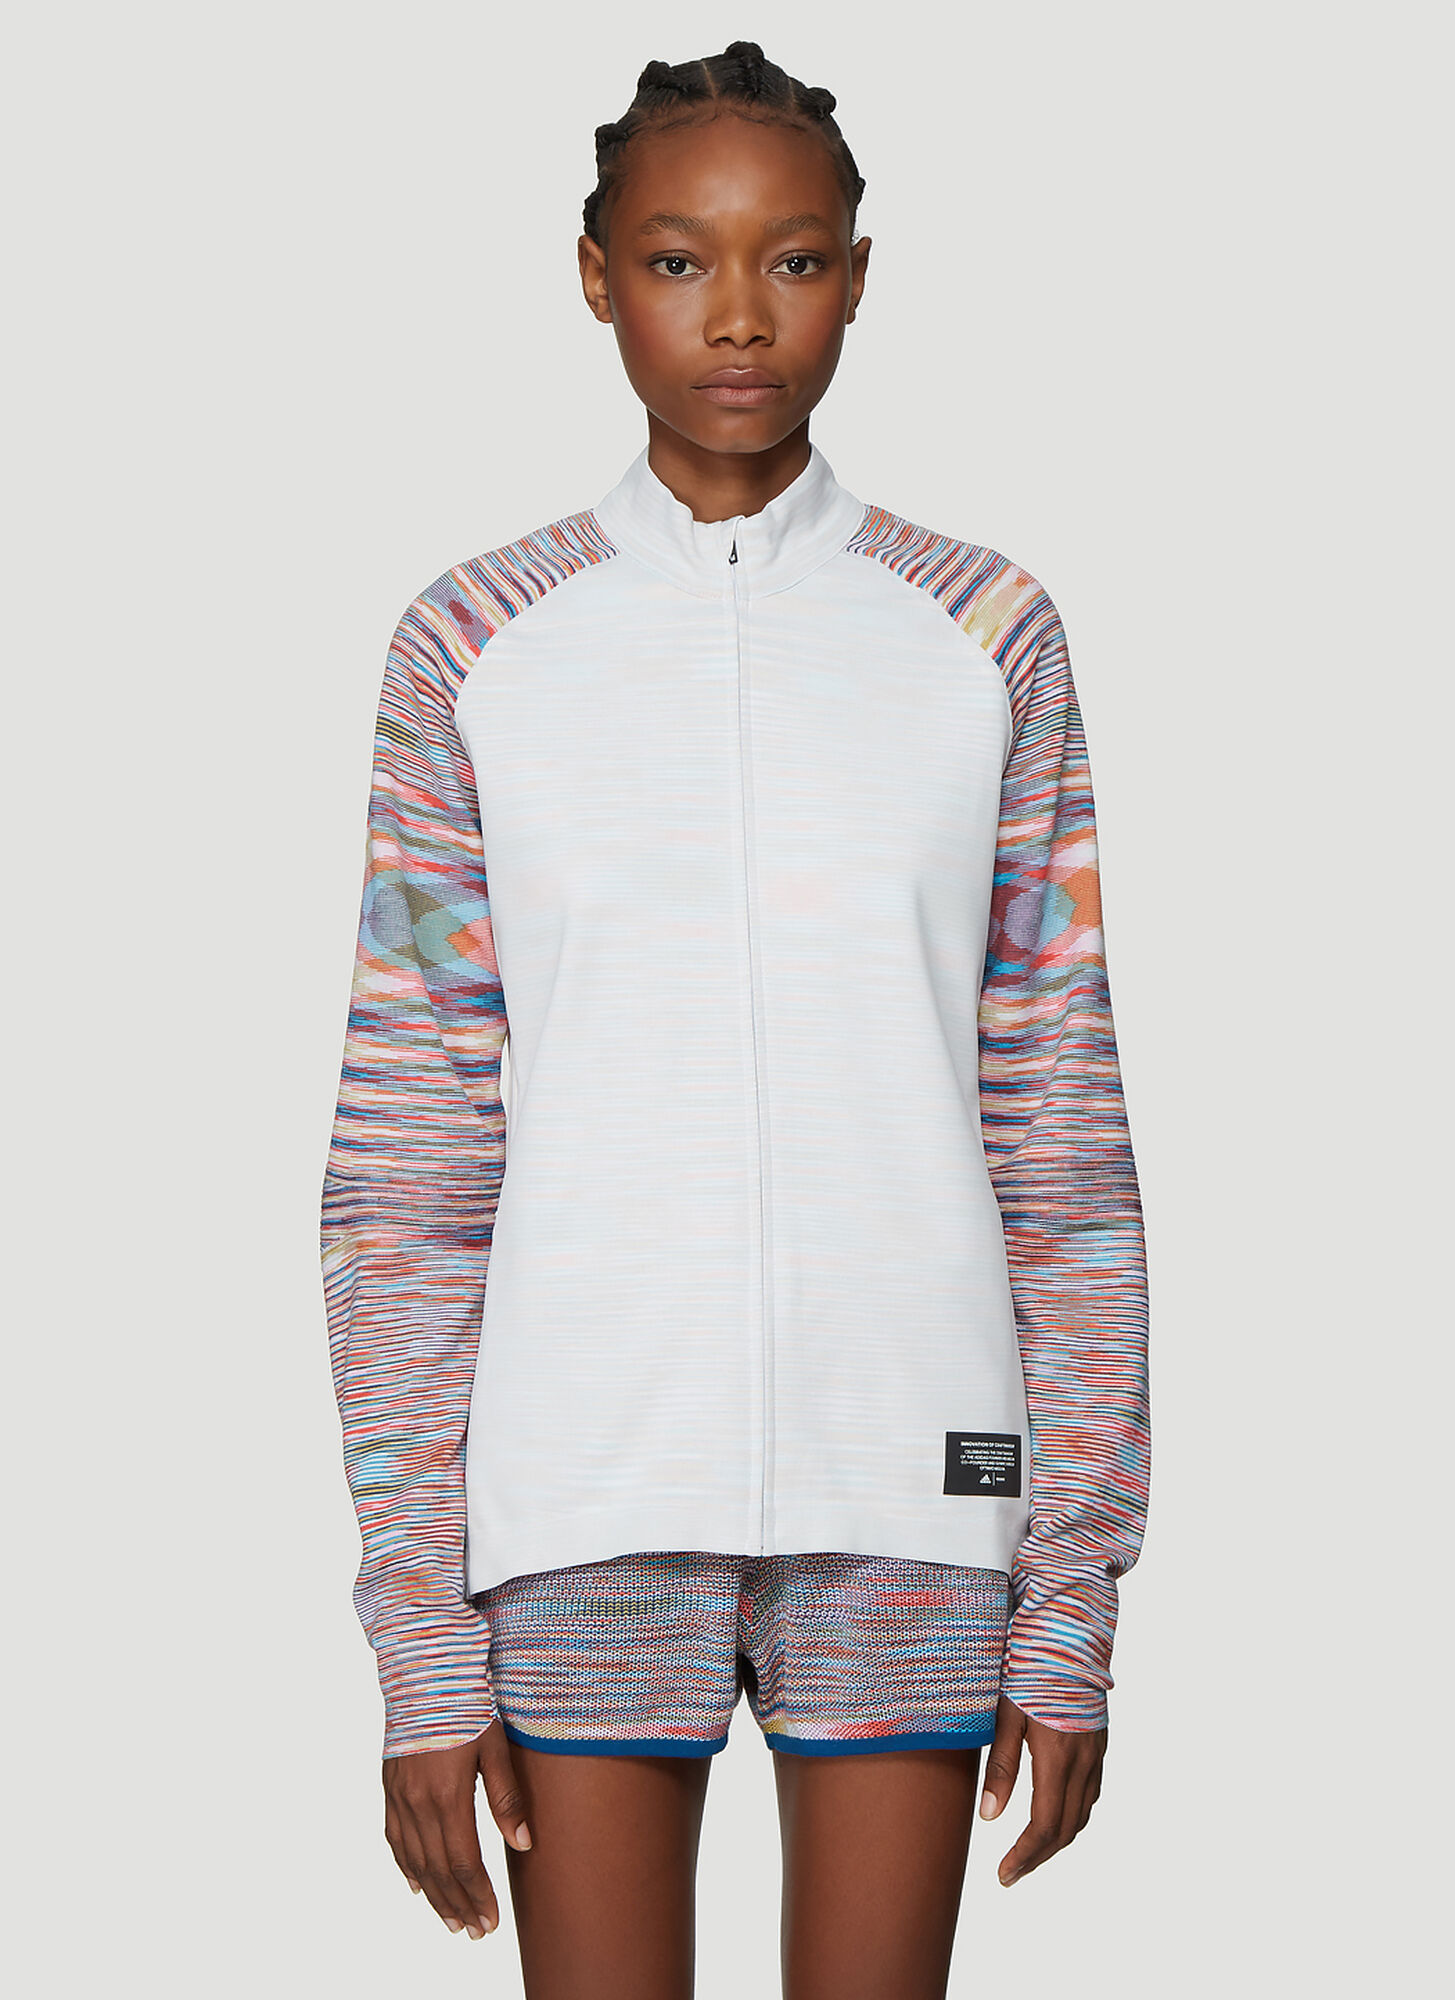 Adidas x Missoni X Missoni PHX Jacket in White